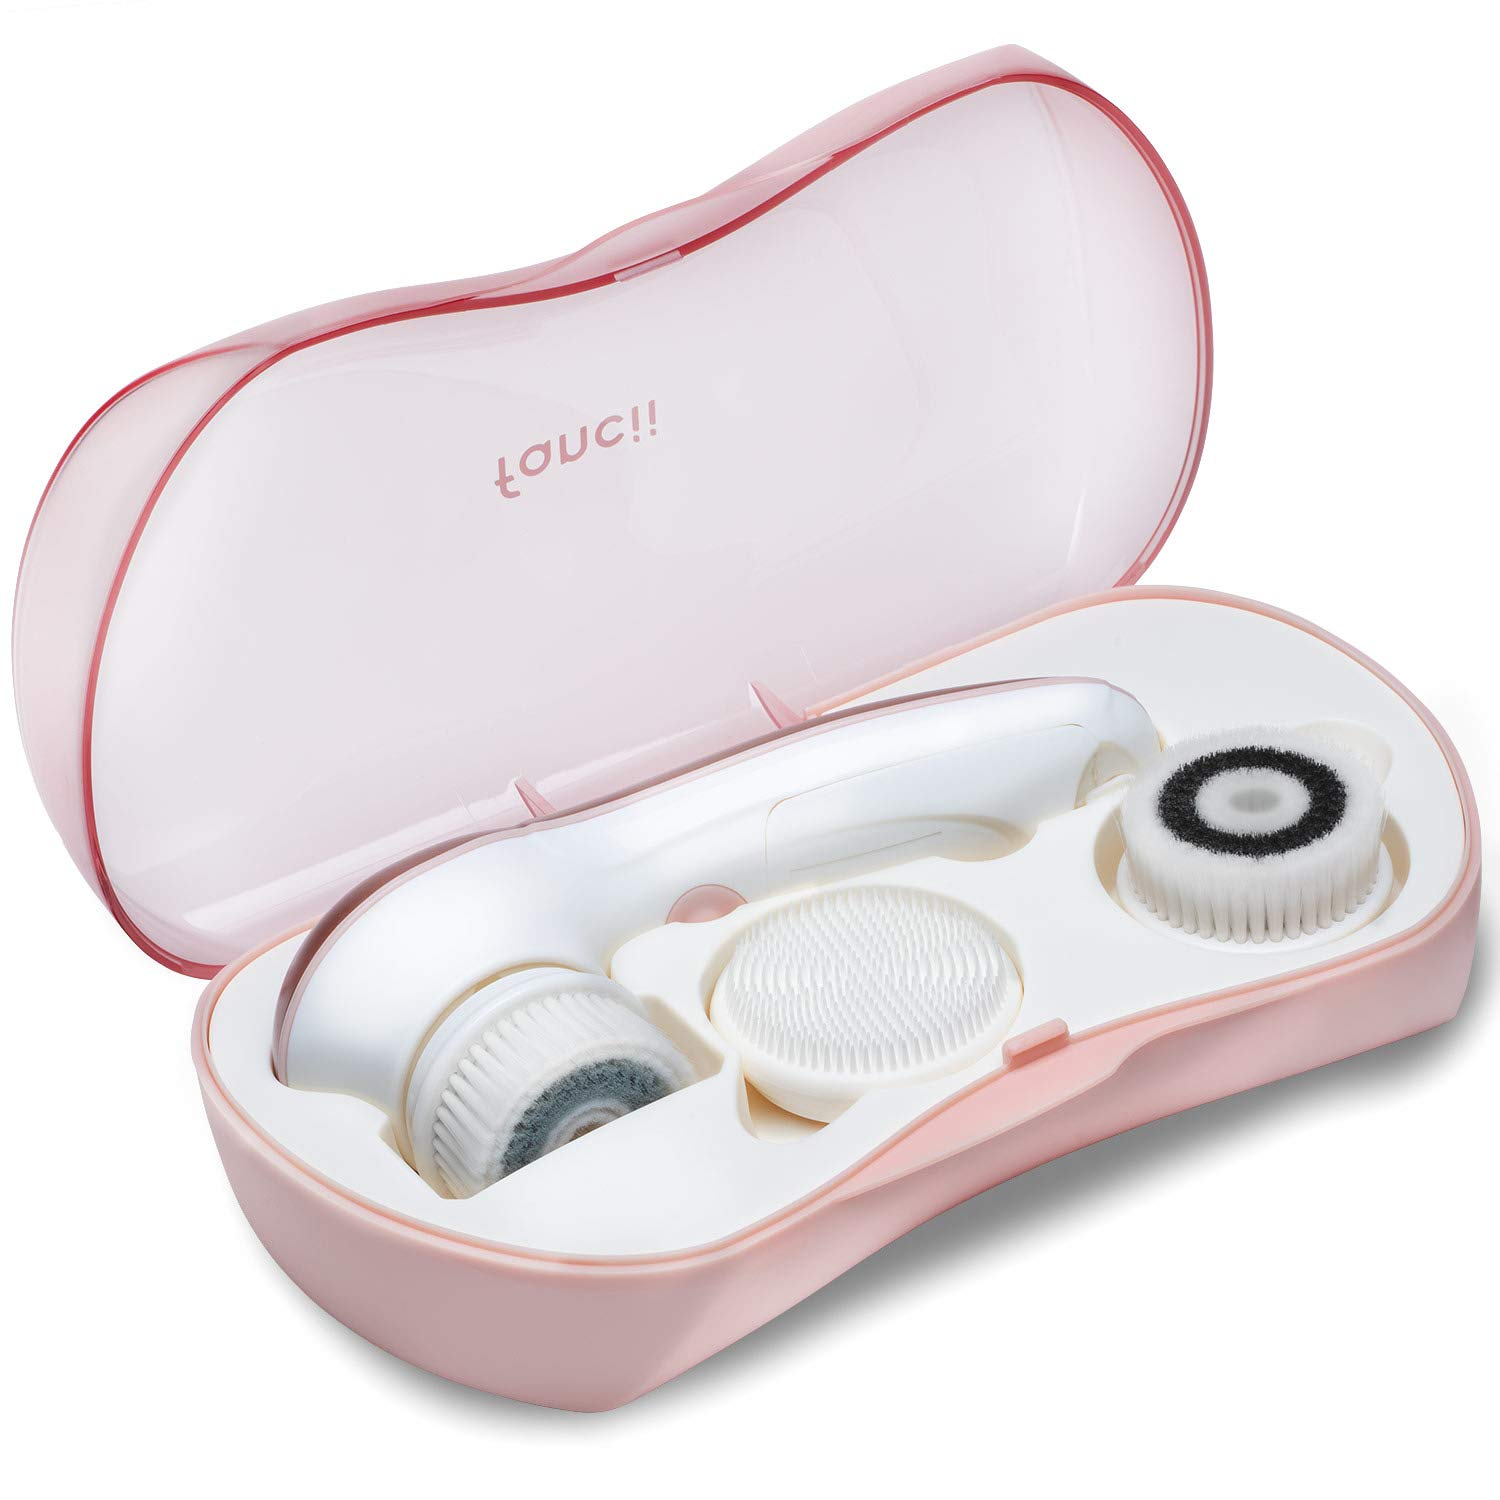 Waterproof Facial Cleansing Spin Brush Set with 3 Exfoliating Brush Heads - Complete Face Spa System by Fancii - Advanced Microdermabrasion for Gentle Exfoliation and Deep Scrubbing